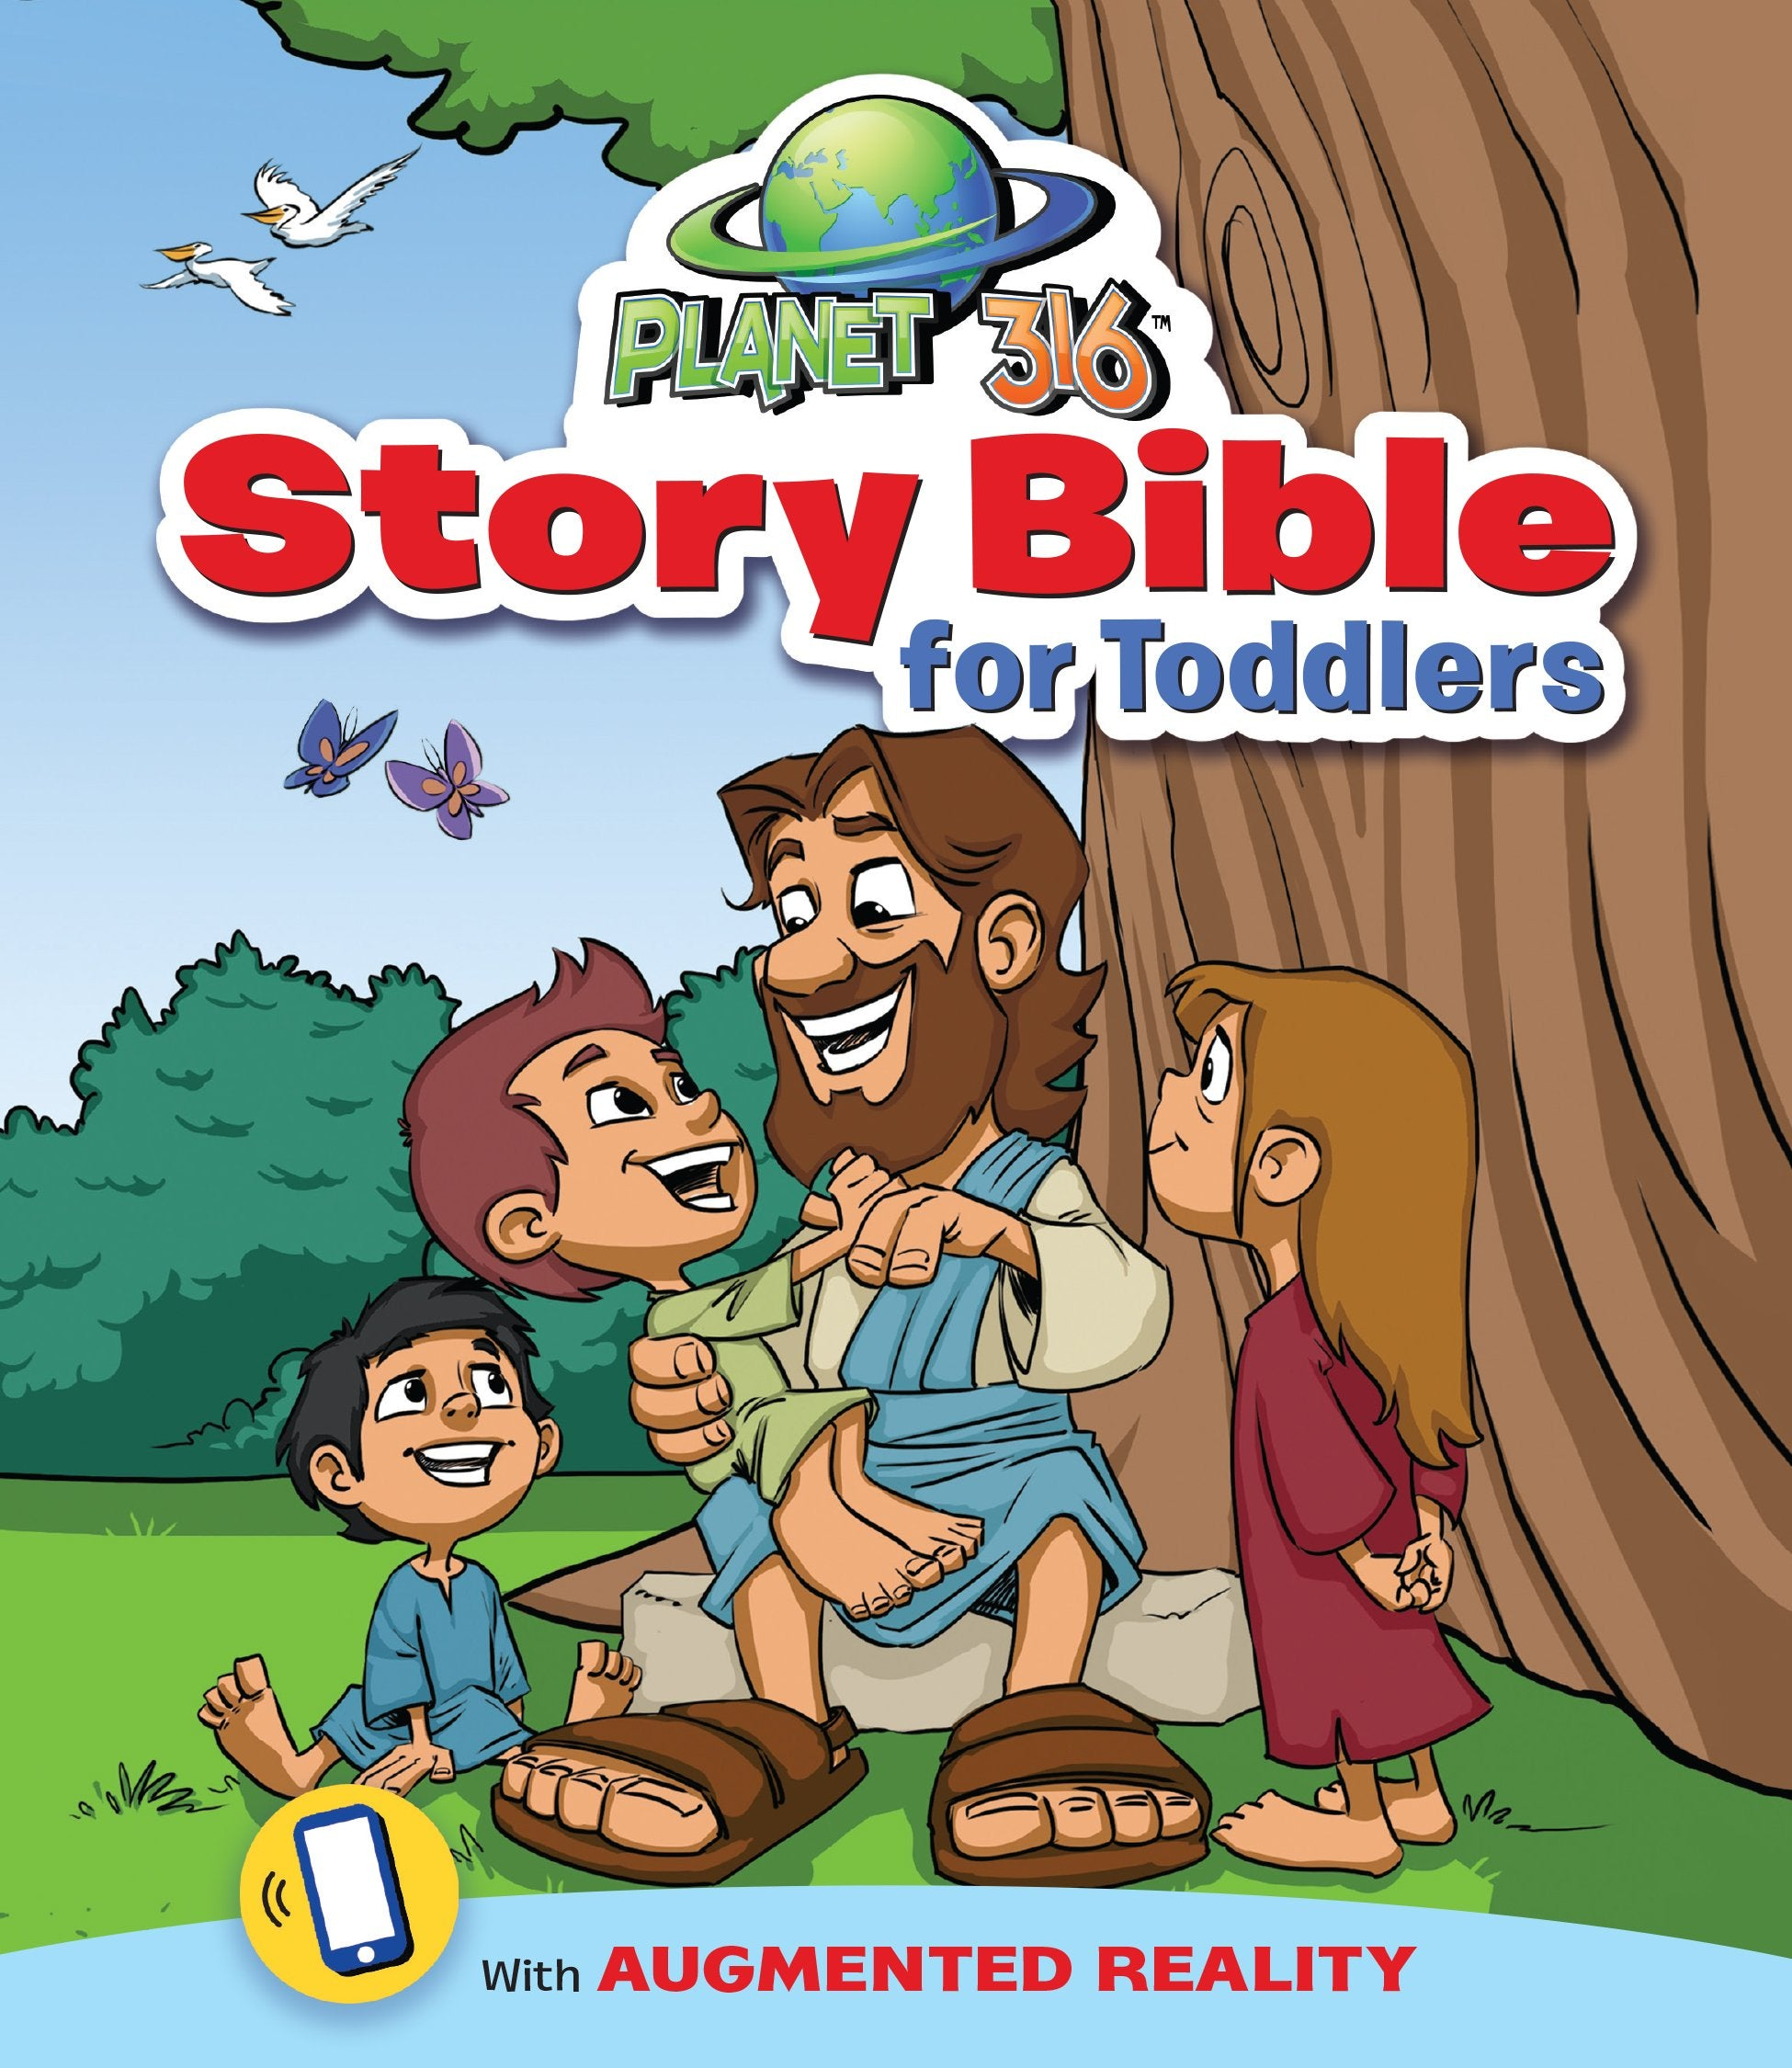 ROCKONLINE | New Creation Church | NCC | Joseph Prince | ROCK Bookshop | ROCK Bookstore | Star Vista | Children | Kids | Bible Story | Christian Living | Bible | Planet 316 Story Bible for Toddlers | Free delivery for SG orders above $50.